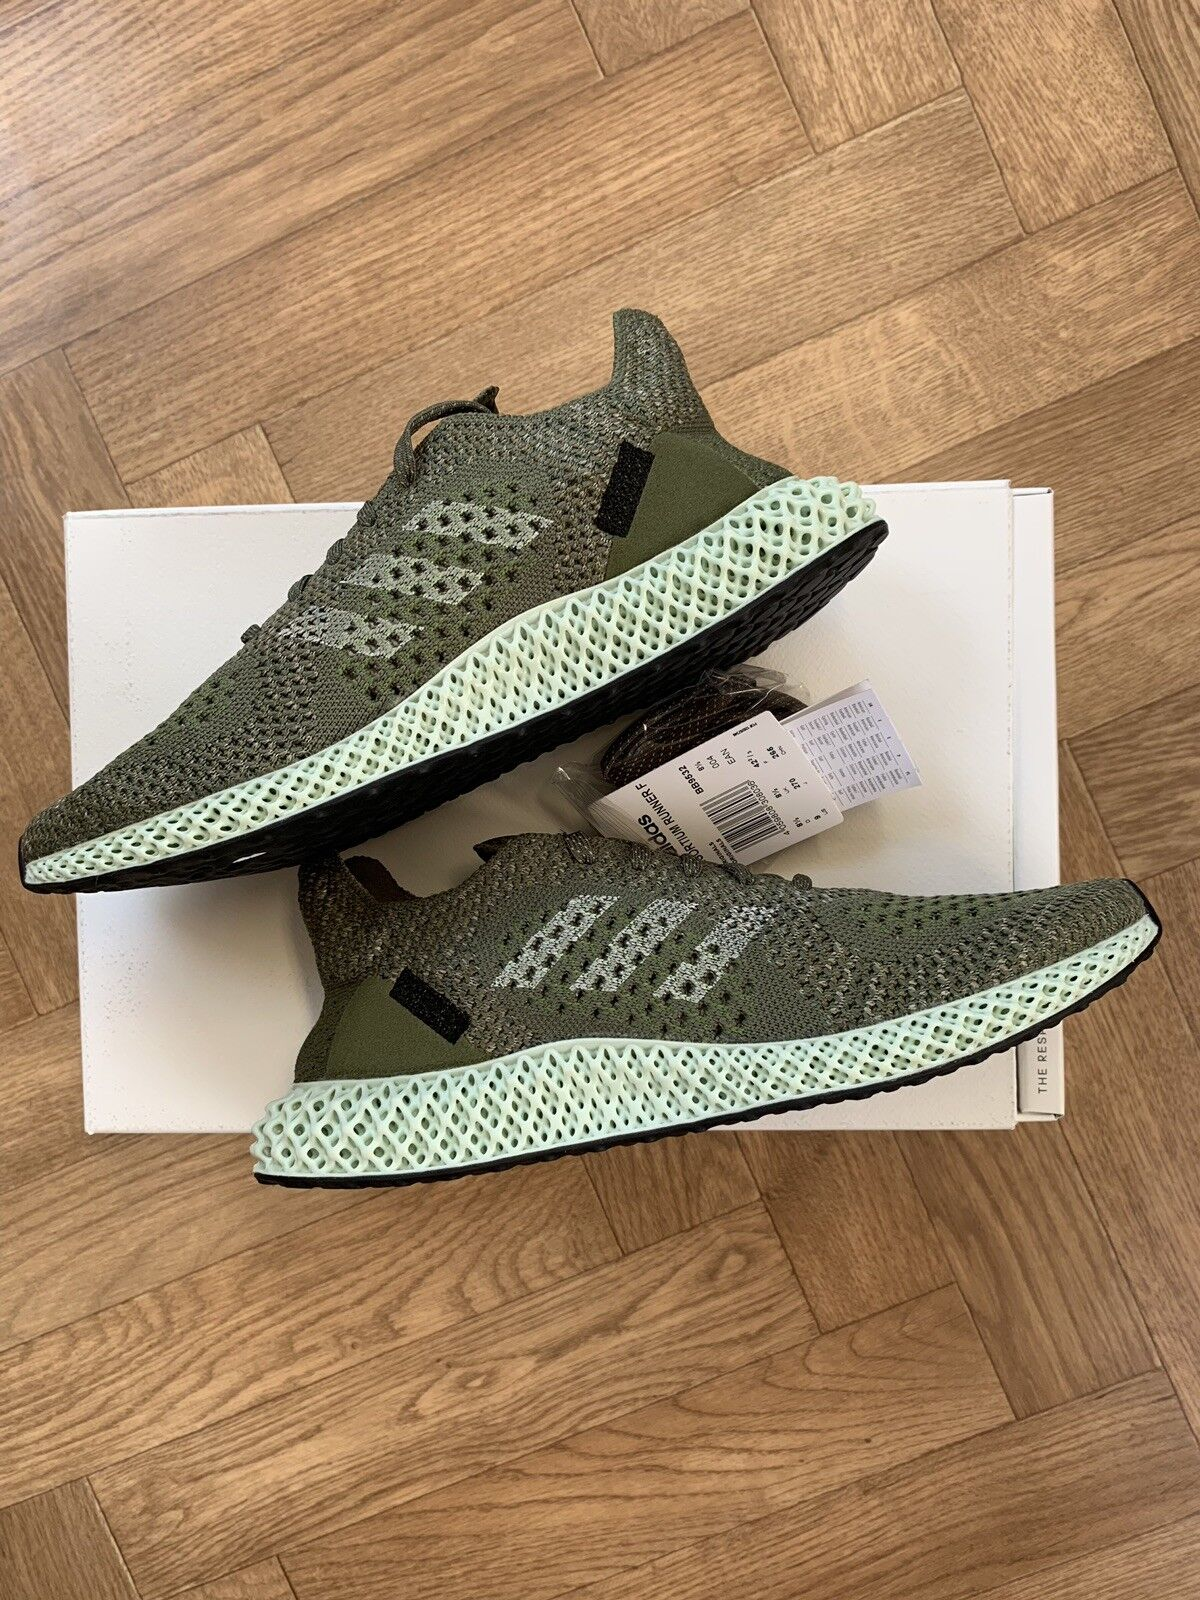 Adidas Futurecraft 4D Footpatrol Size 8.5 Boxed New Rare shoes ( With Receipt